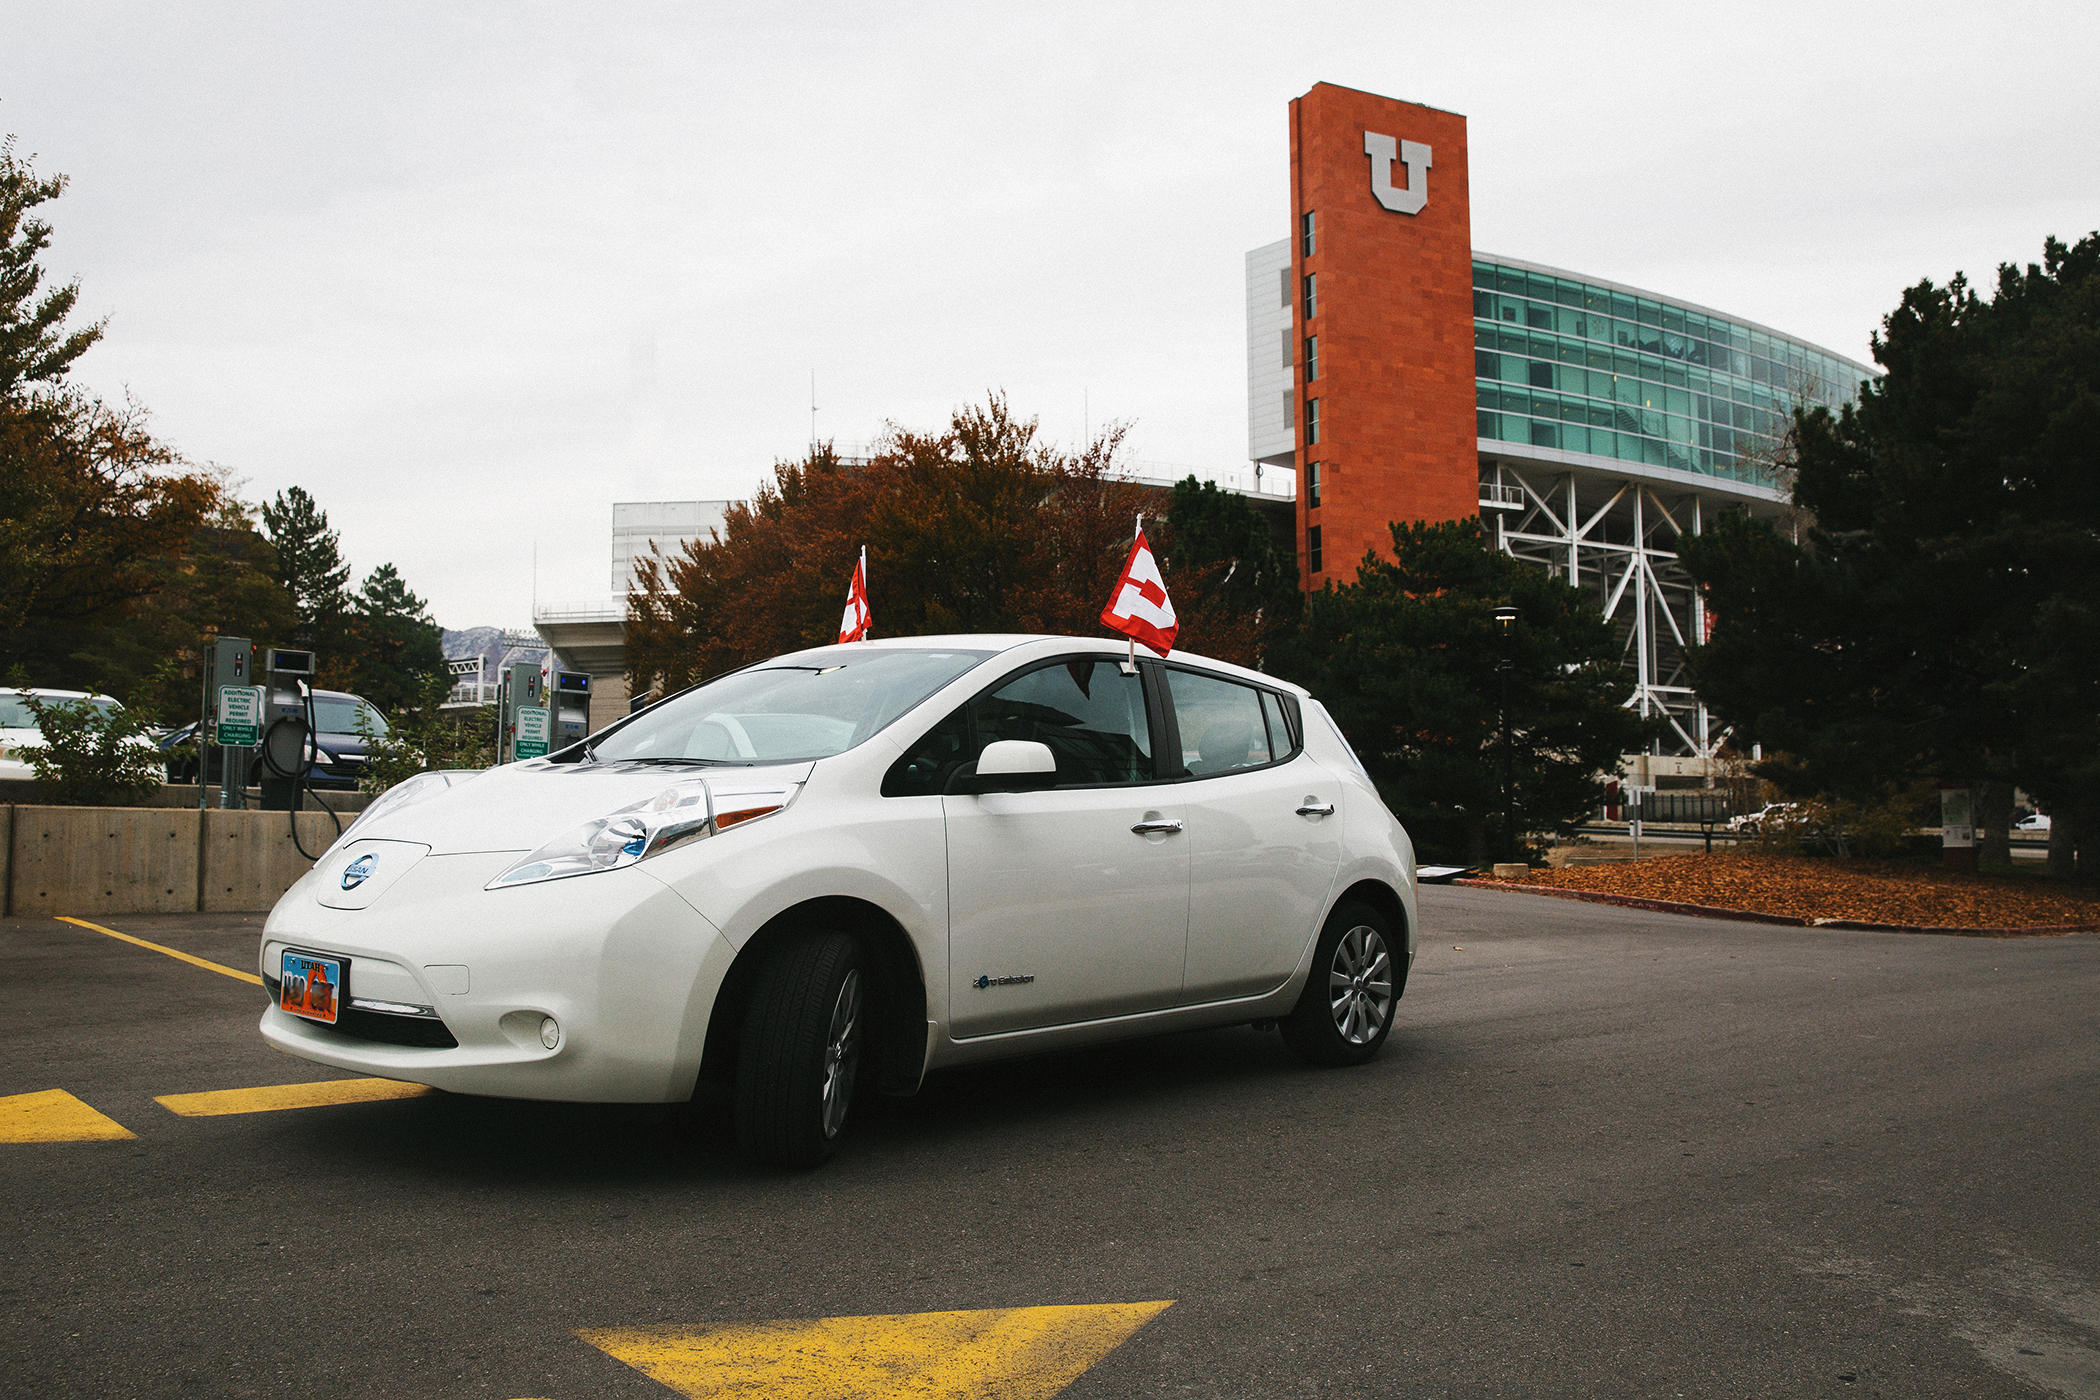 U Drive Electric Continues Cash Incentives Through Jan